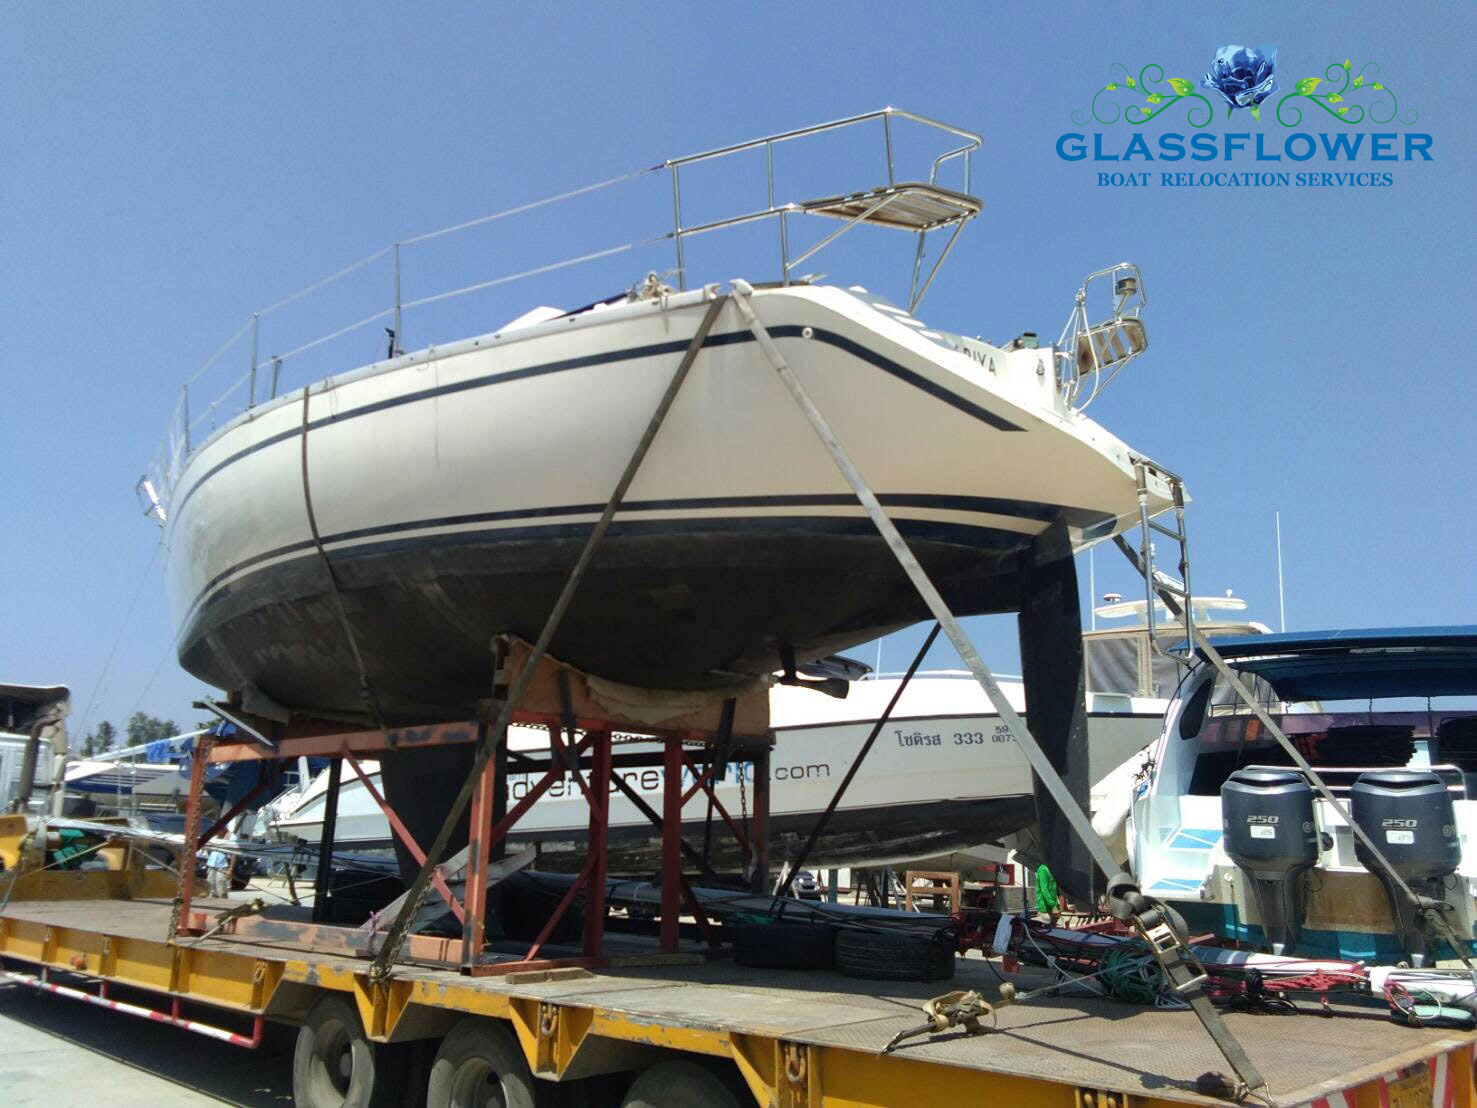 boat relocation glassflower thailand large keel boat